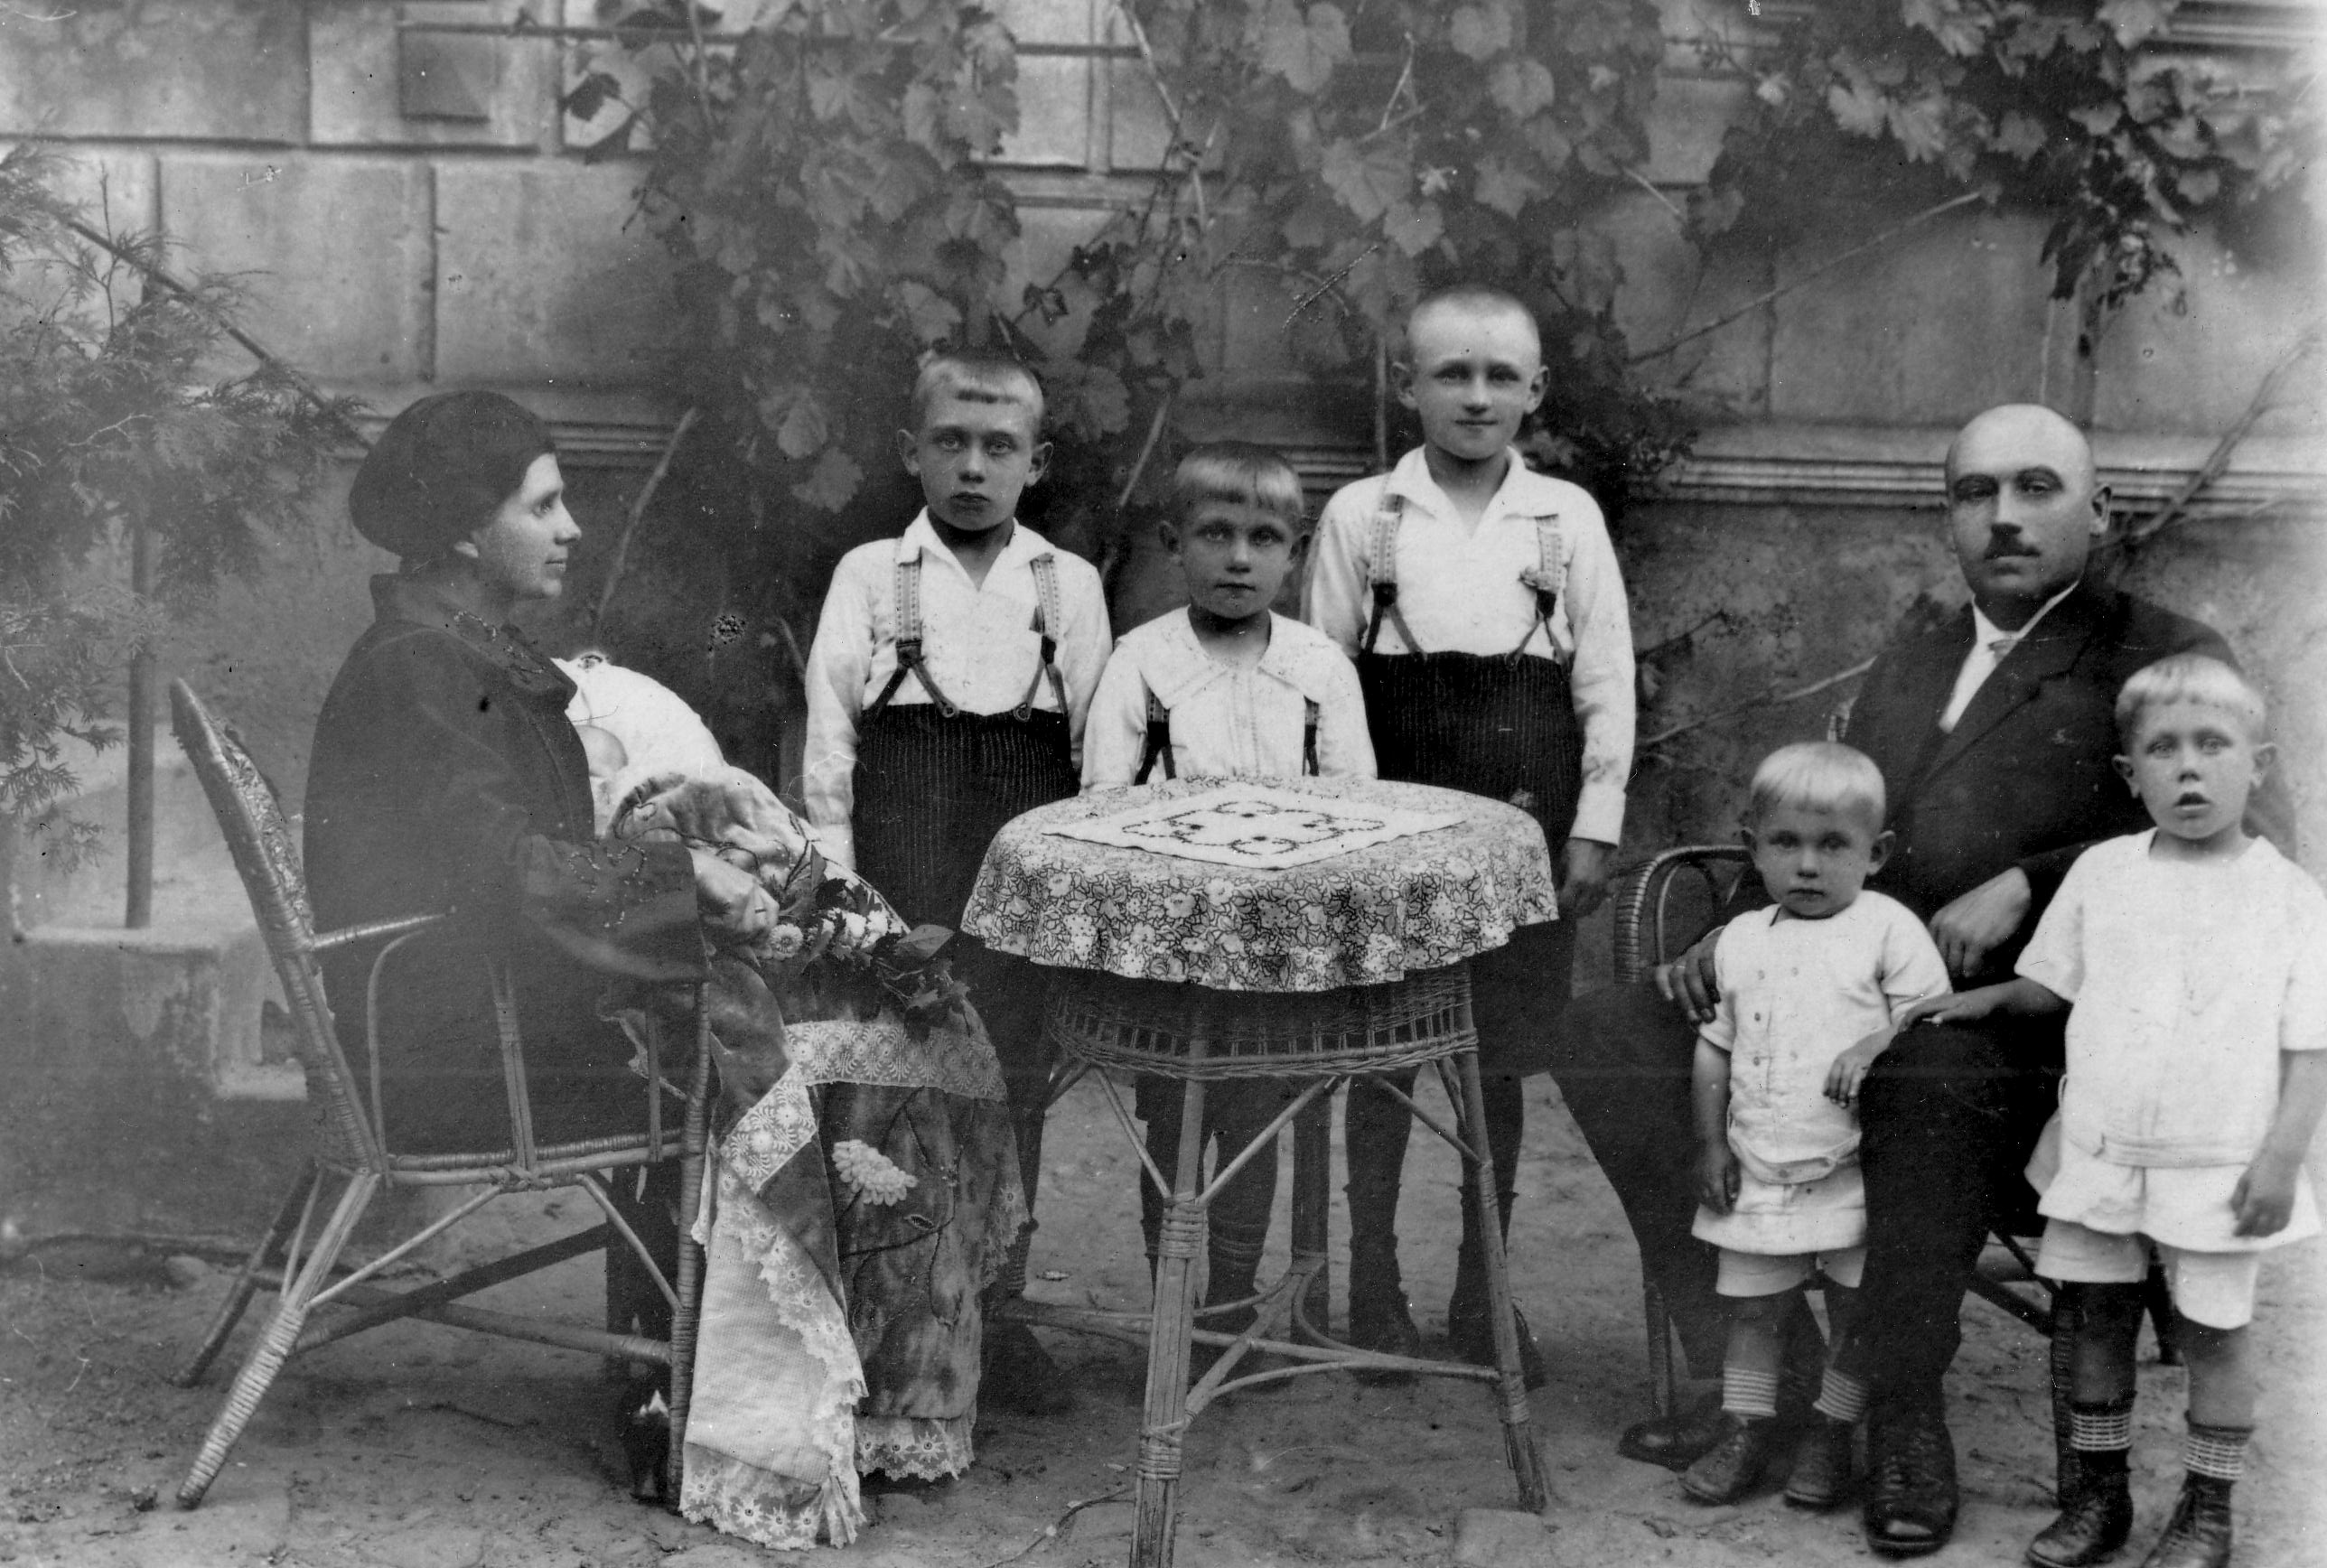 Polish Family Outdoor Sitting Round Table 1923